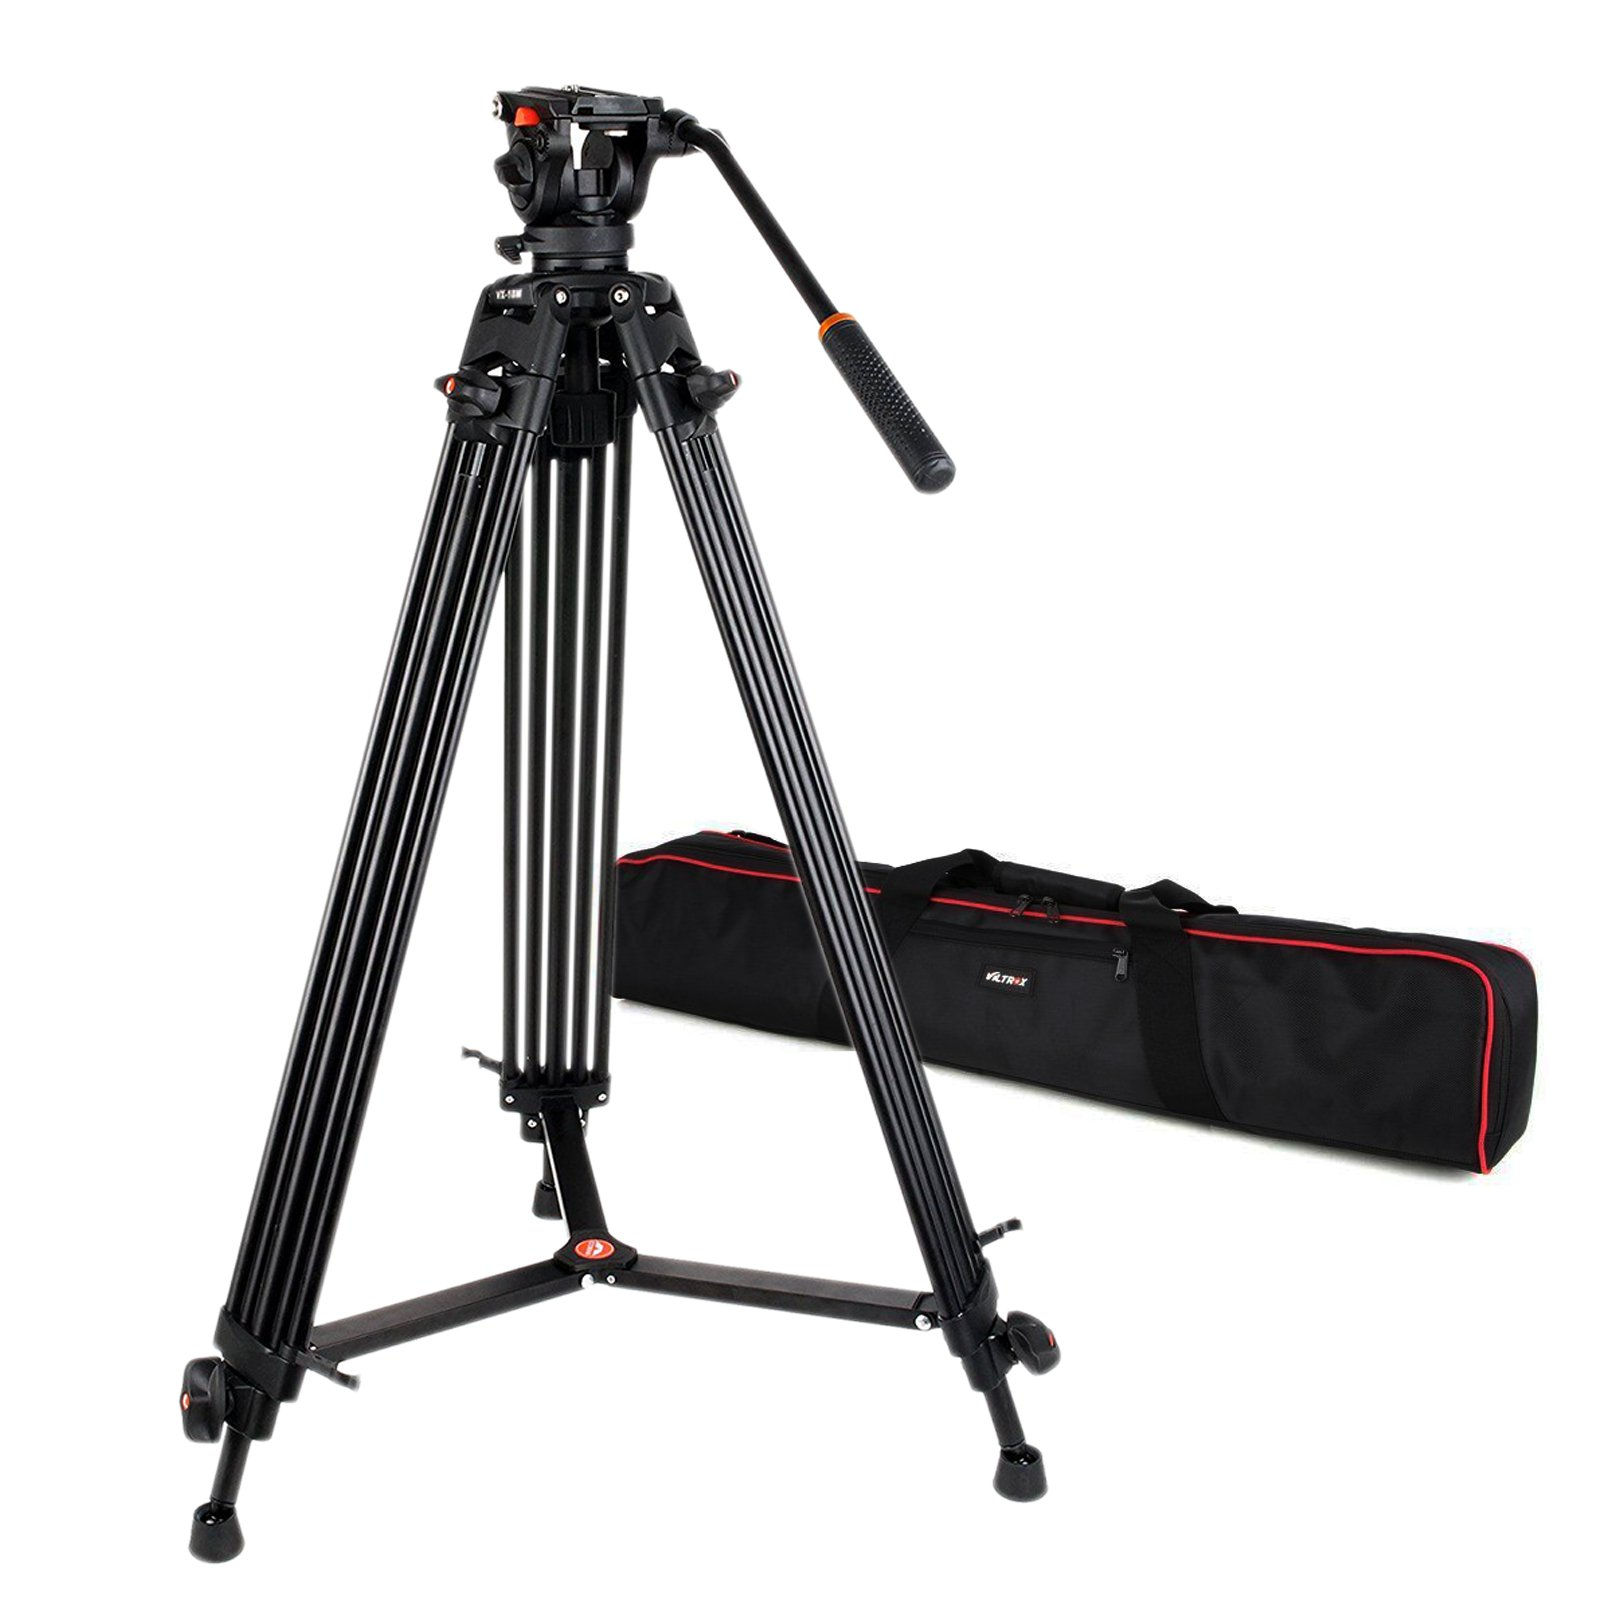 VILTROX VX-18M Professional Heavy Duty Video Camcorder Tripod with Fluid Drag Head and quick release plate , 74'' inch ,Max loading 10KG, with Carrying bag,Horseshoe Shaped bracket by VILTROX